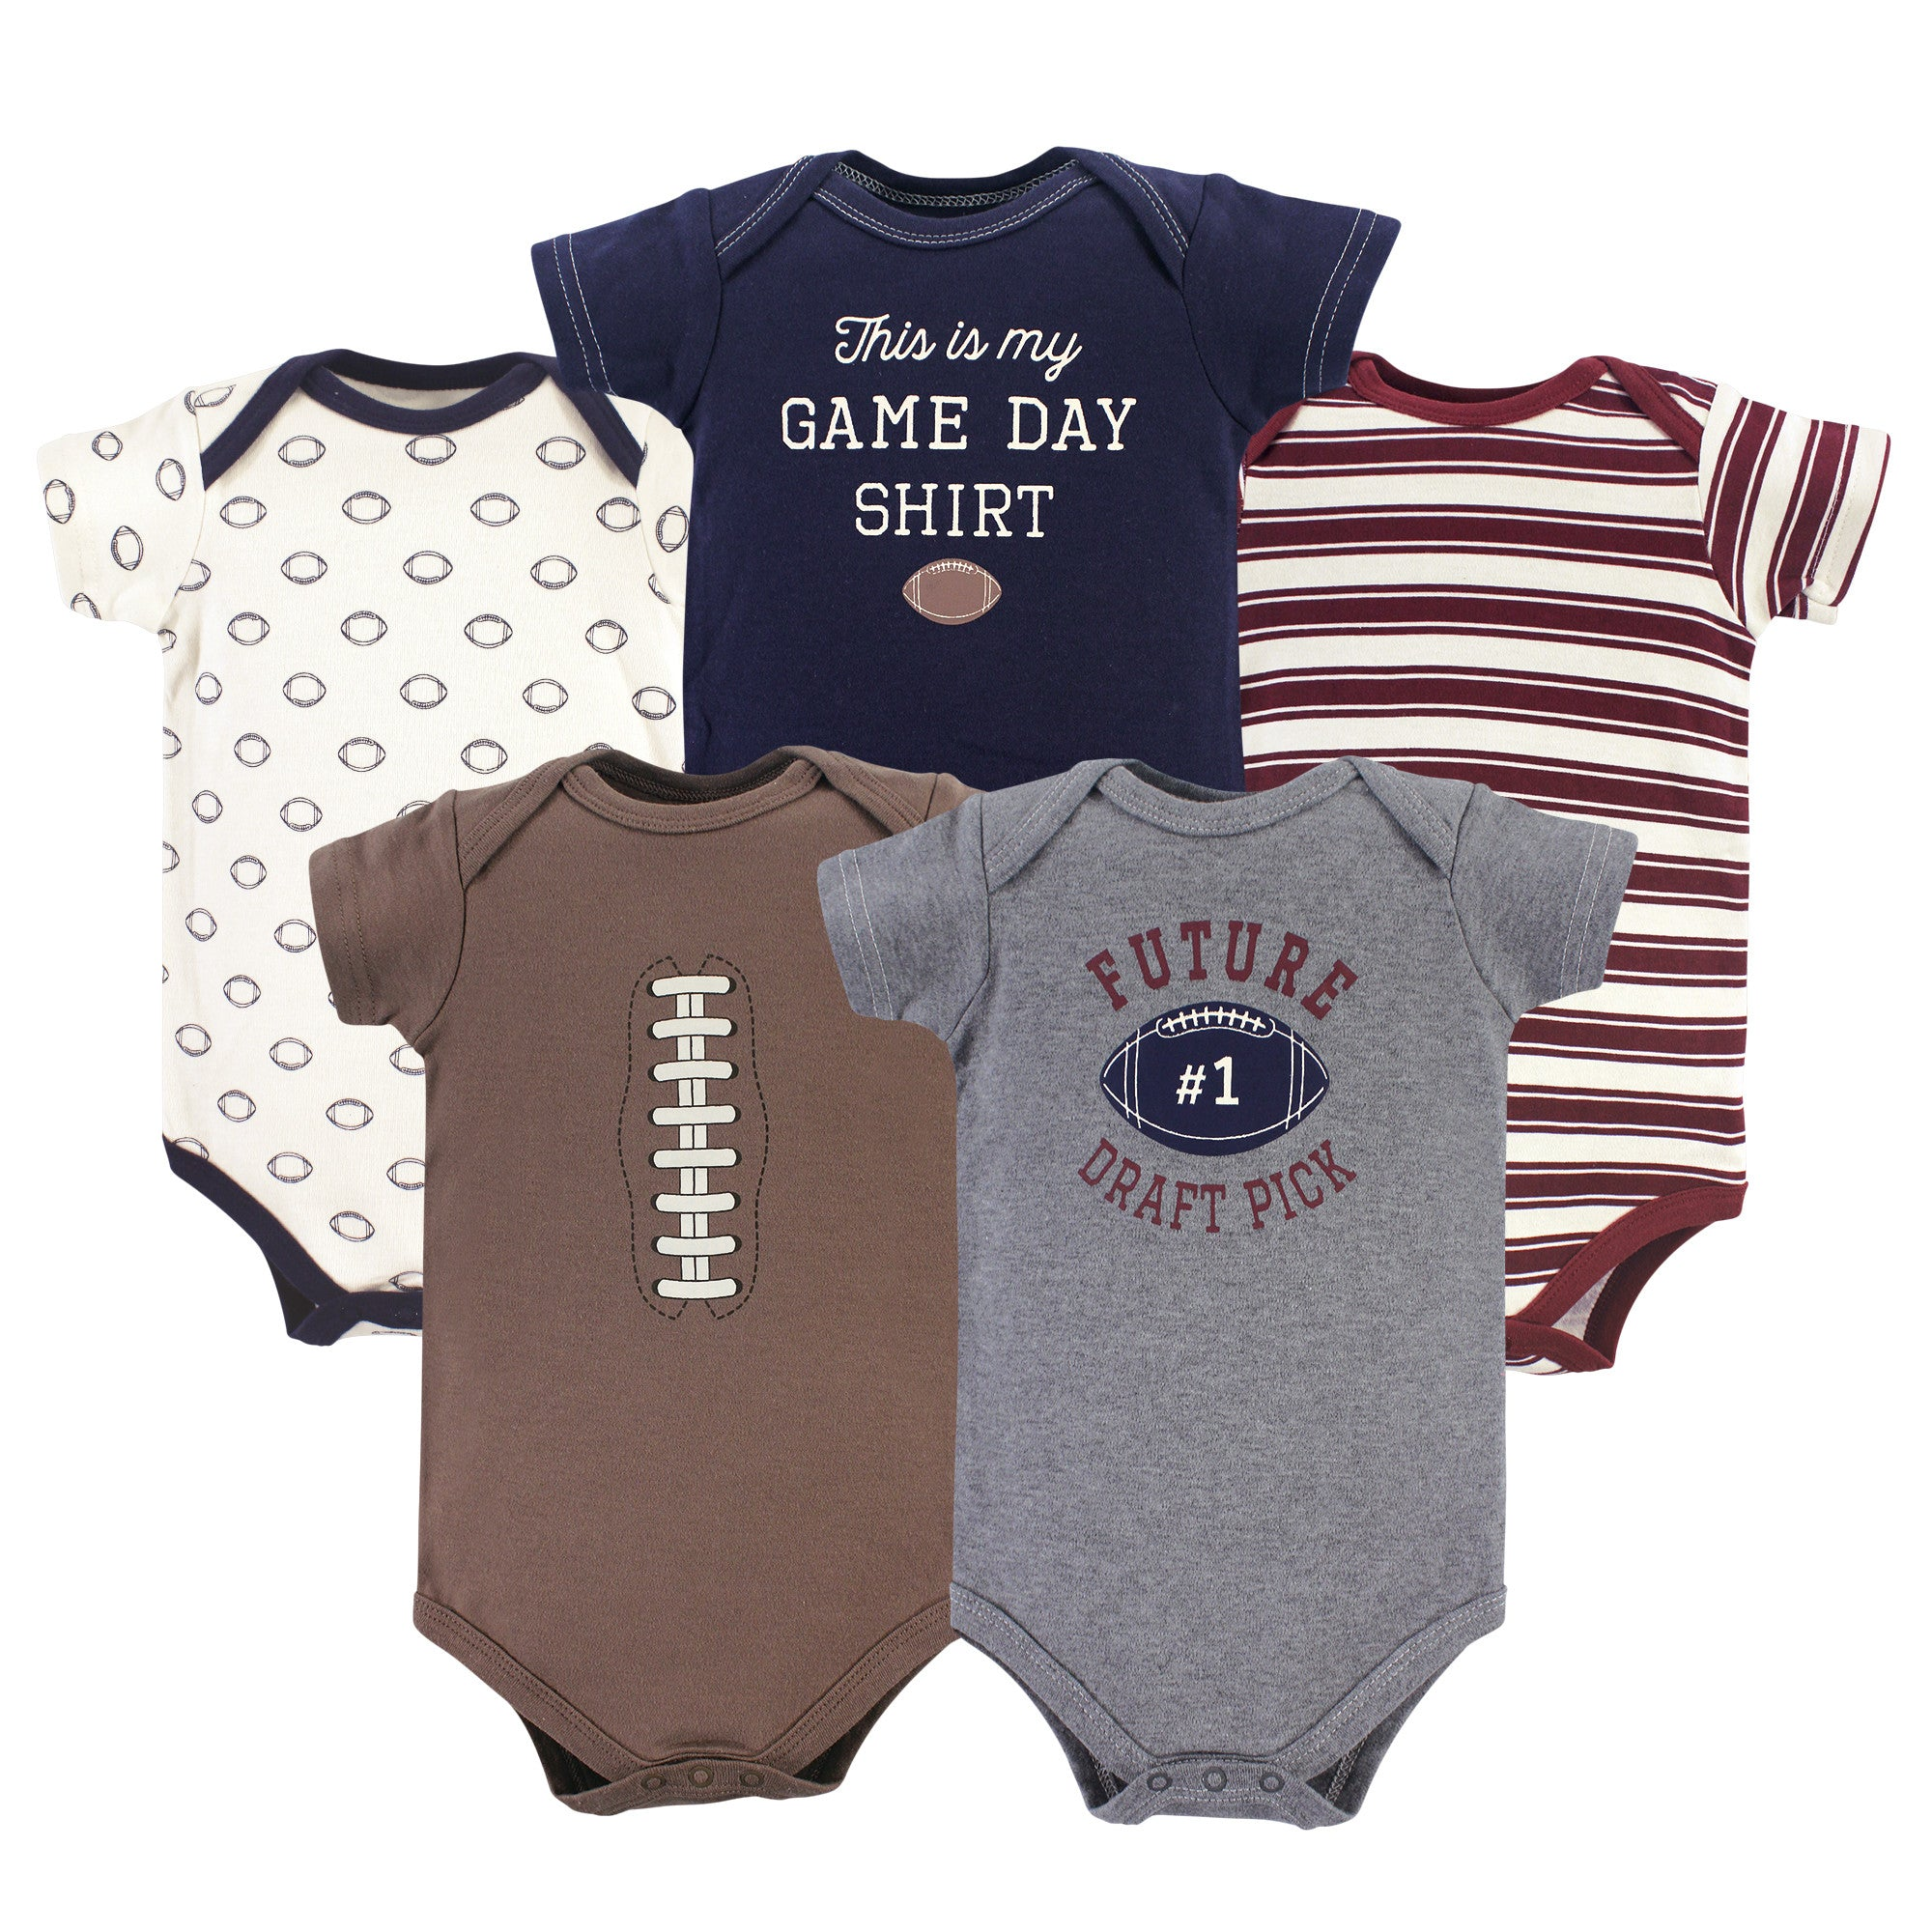 Luvable Friends Bodysuit 5pk (This Is My Game Day Shirt)